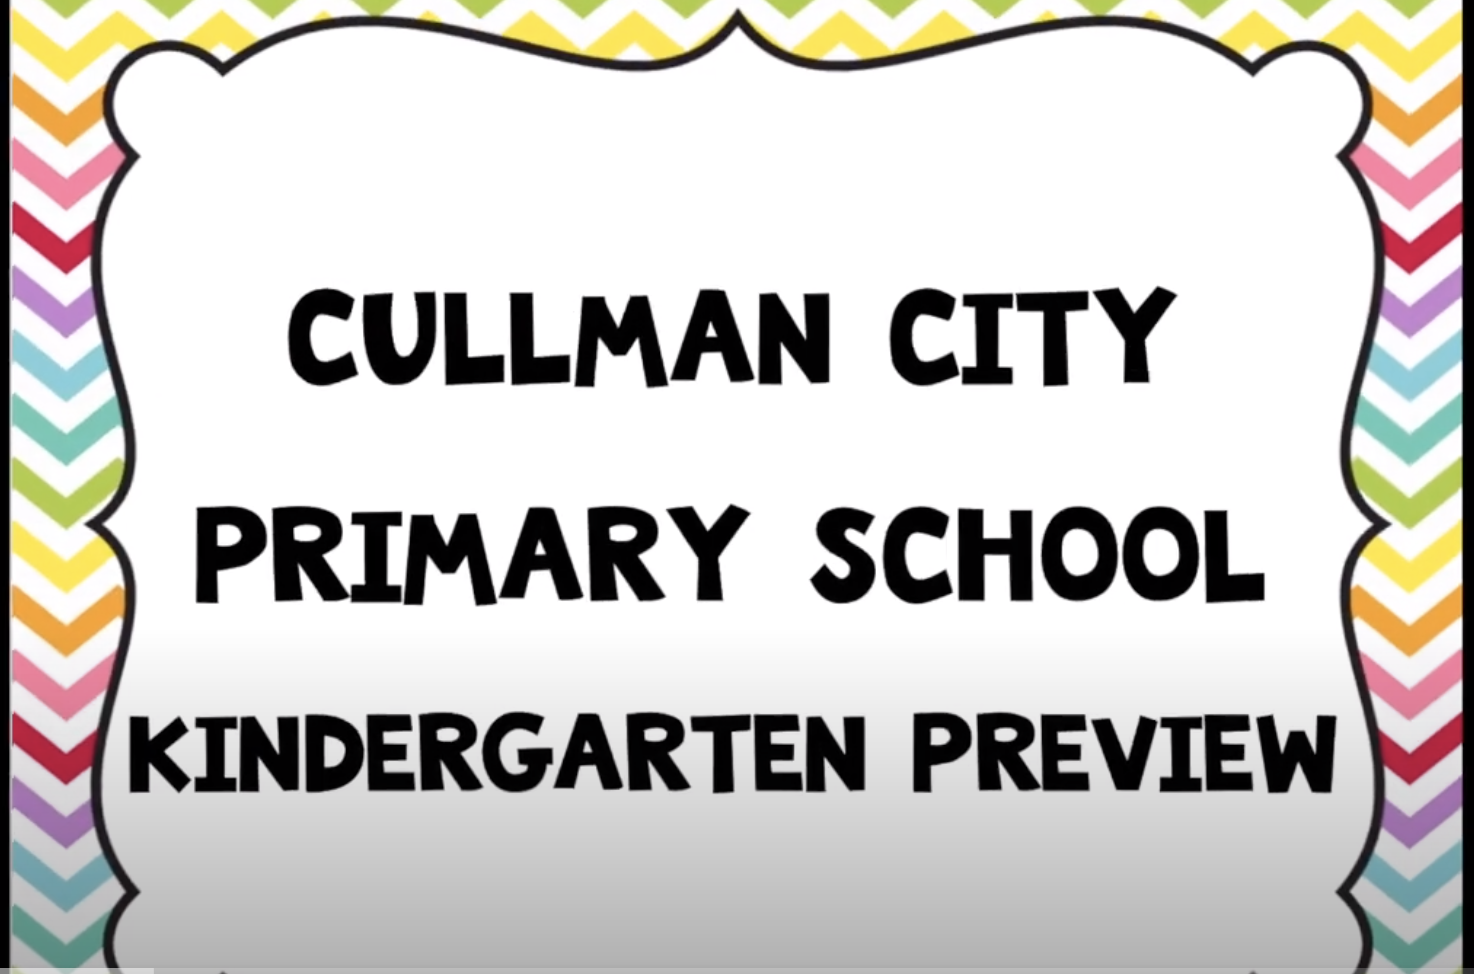 click here to view the CCPS kindergarten preview video